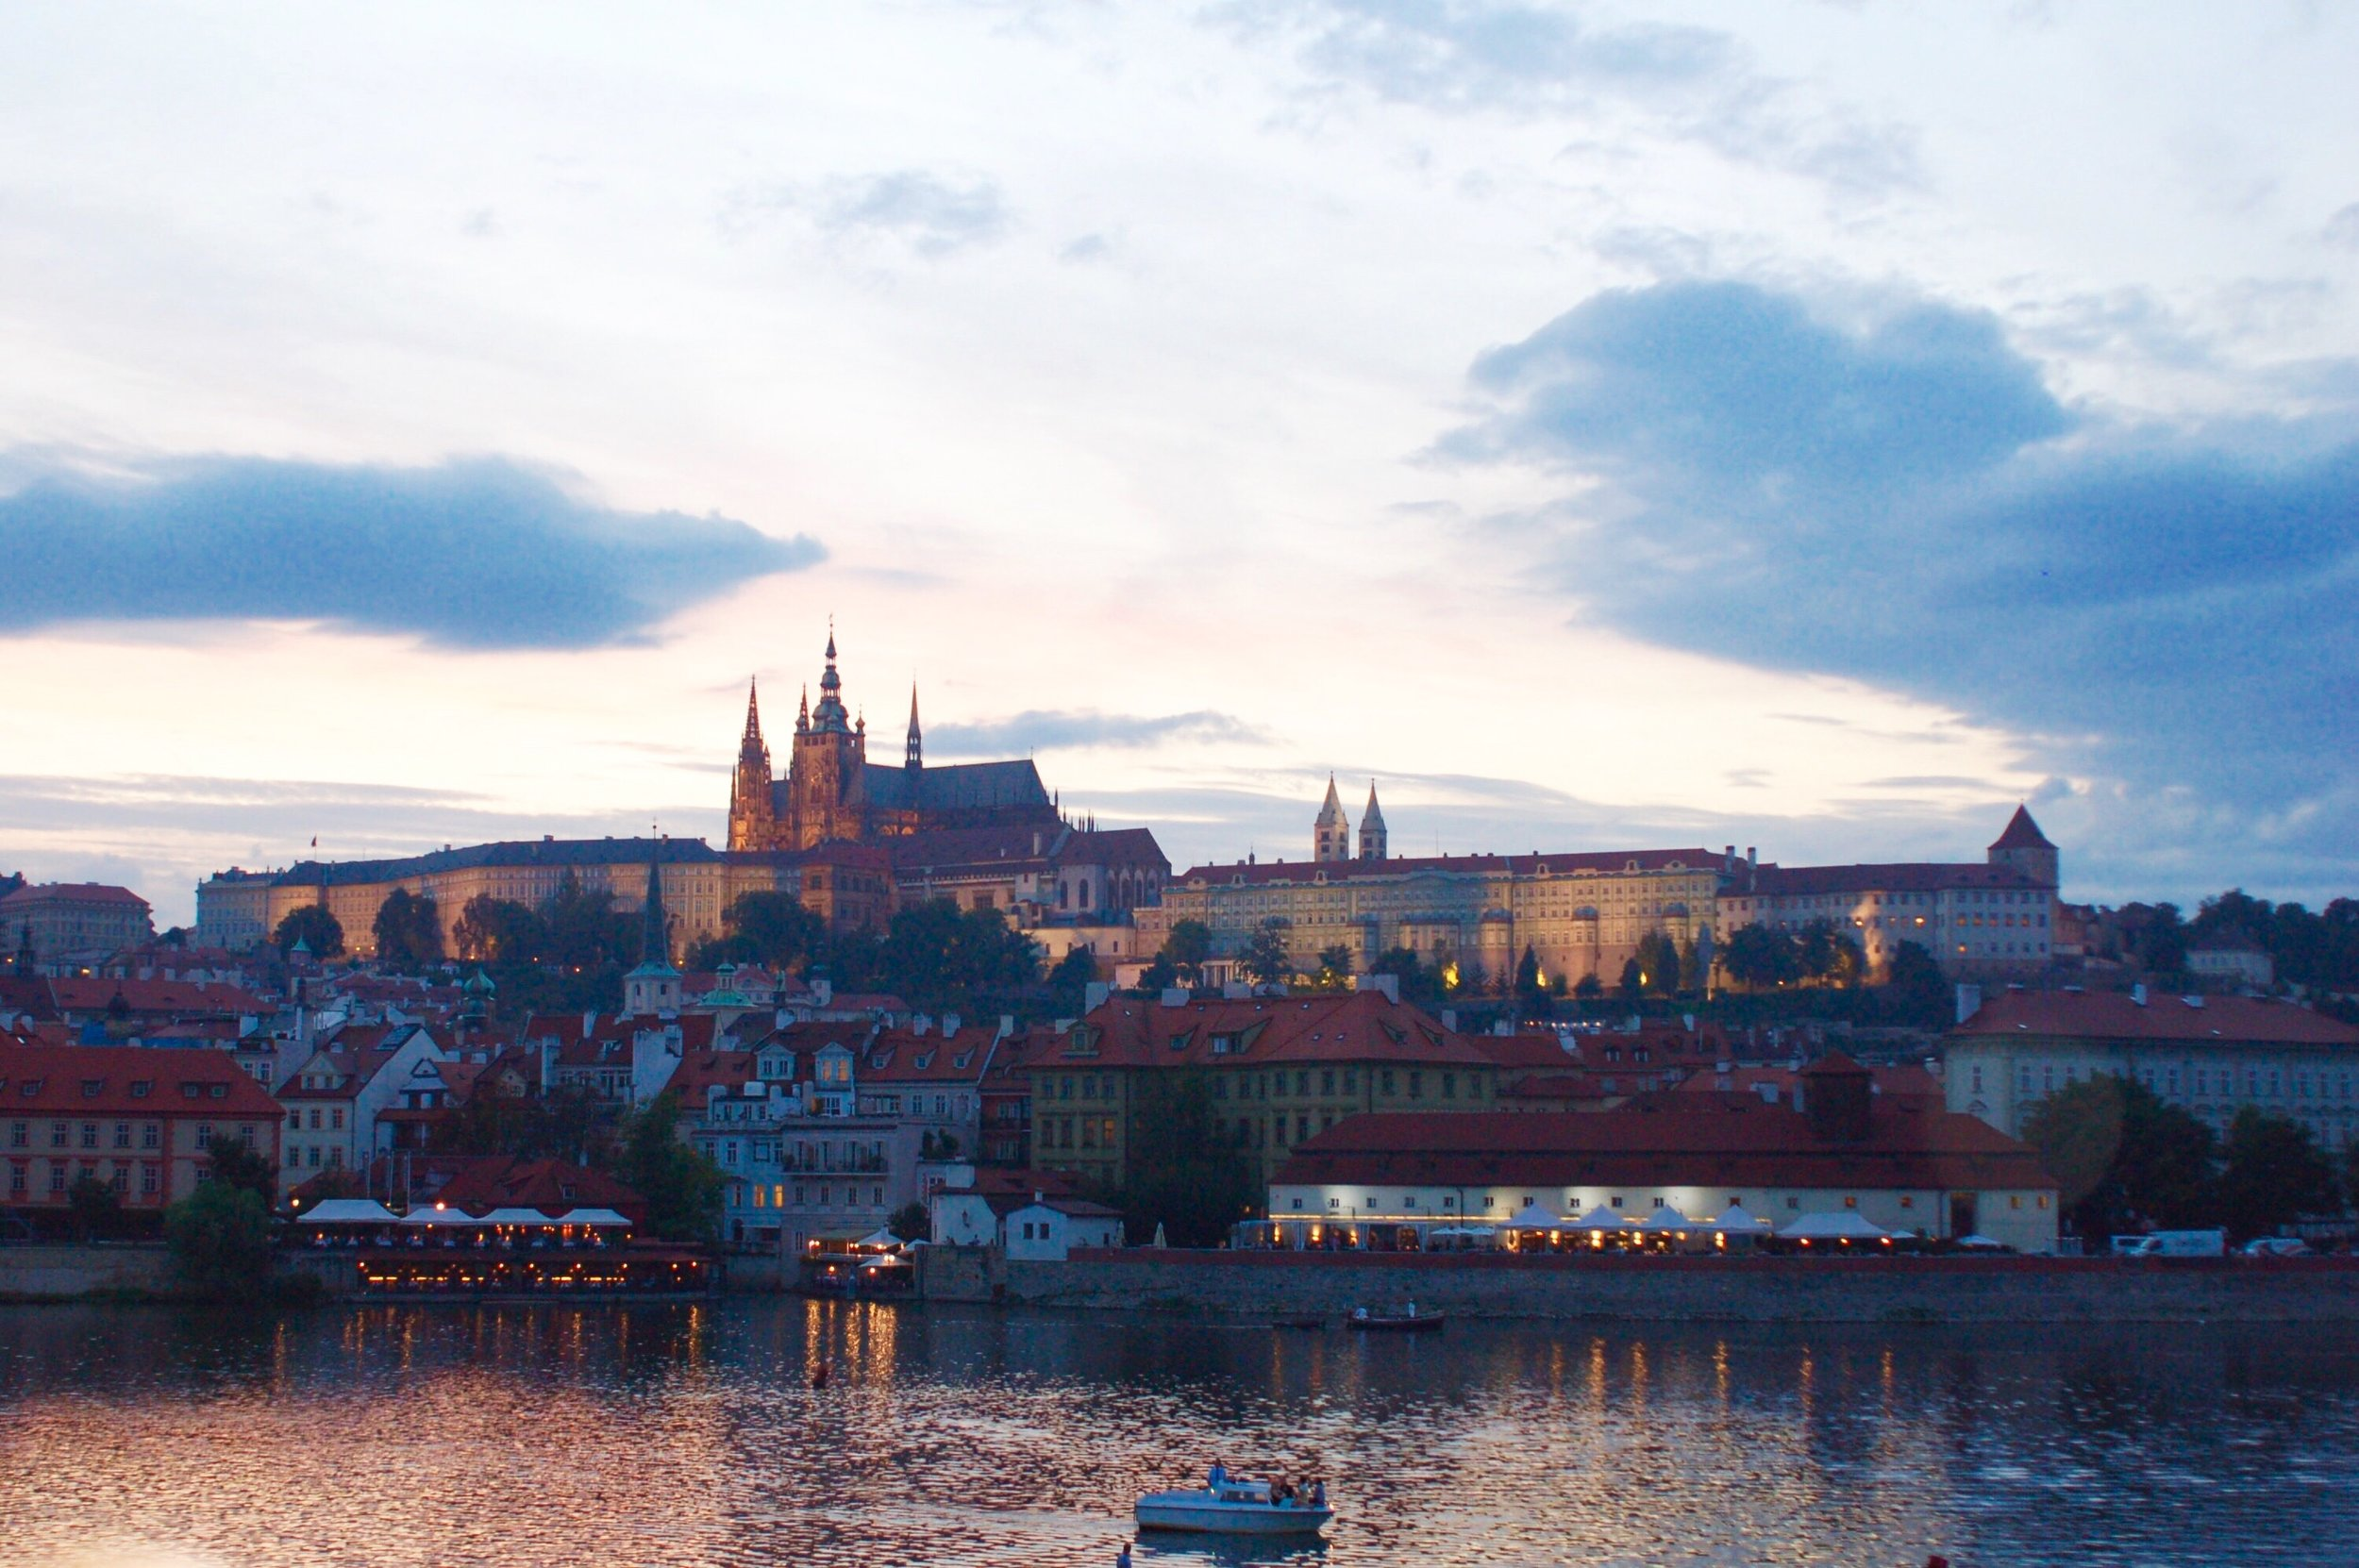 An evening view of Malá Strana